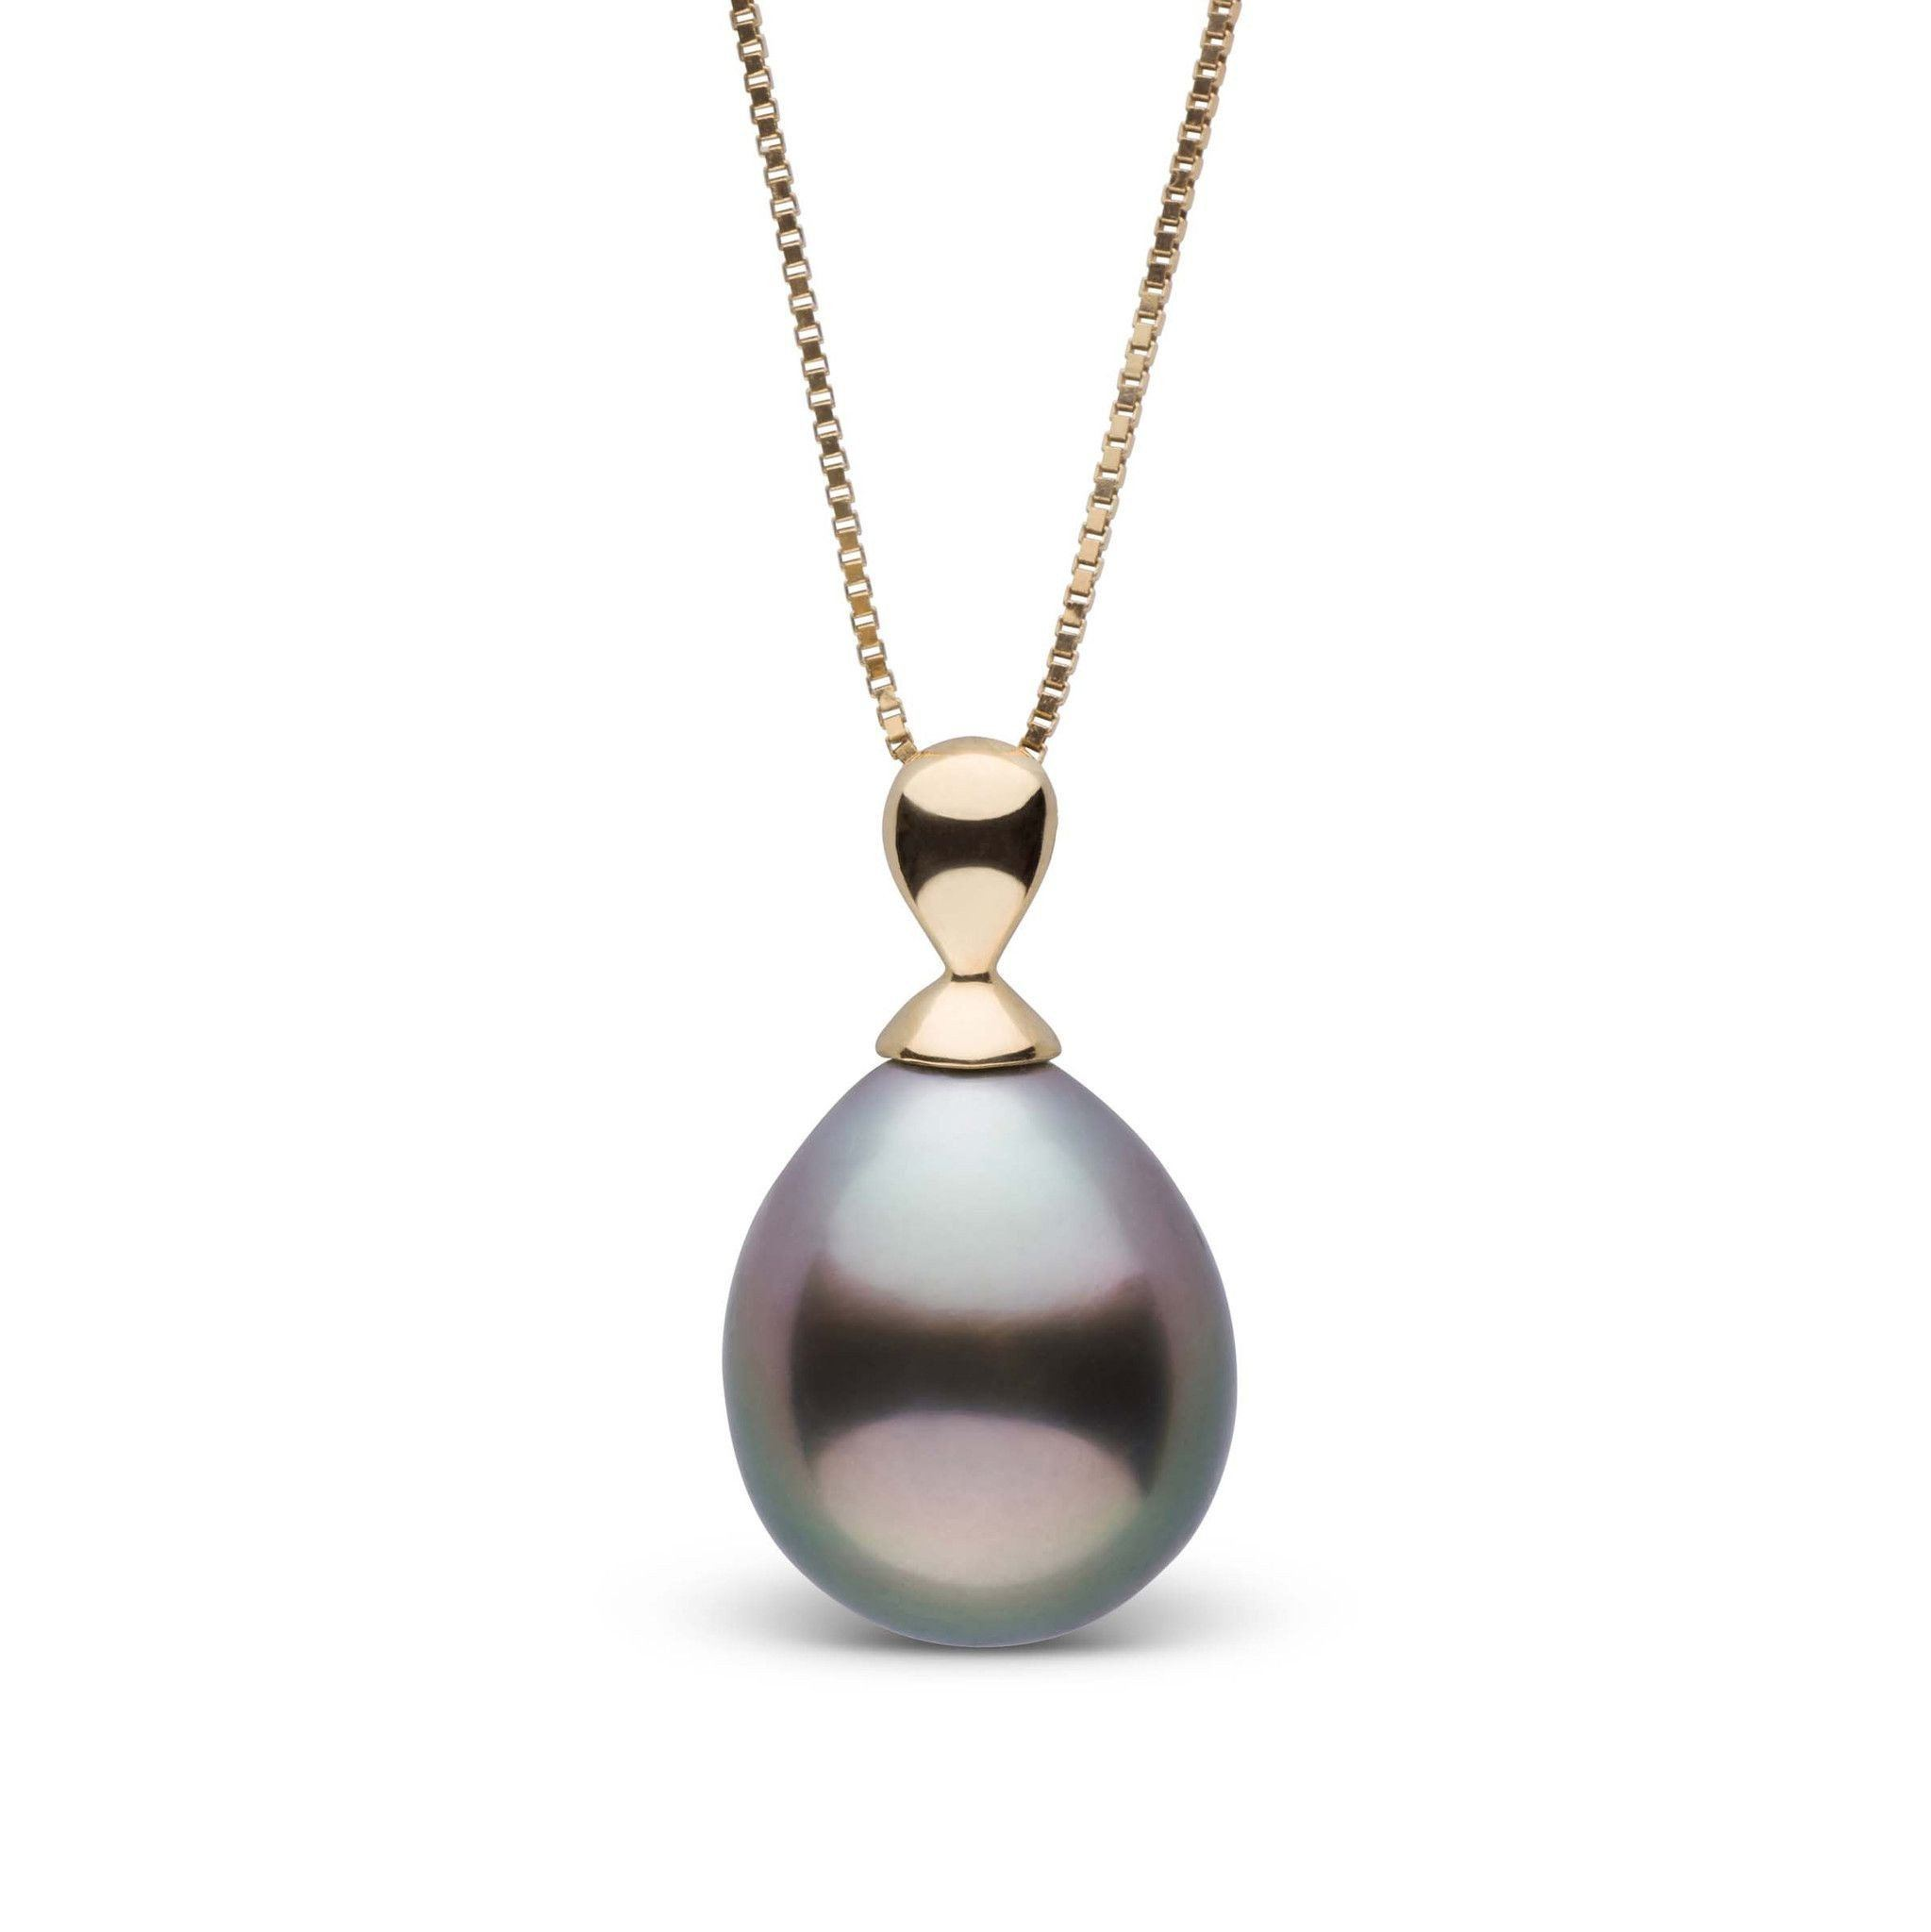 10.0-11.0 mm Dew Collection Tahitian Drop Pearl Pendant